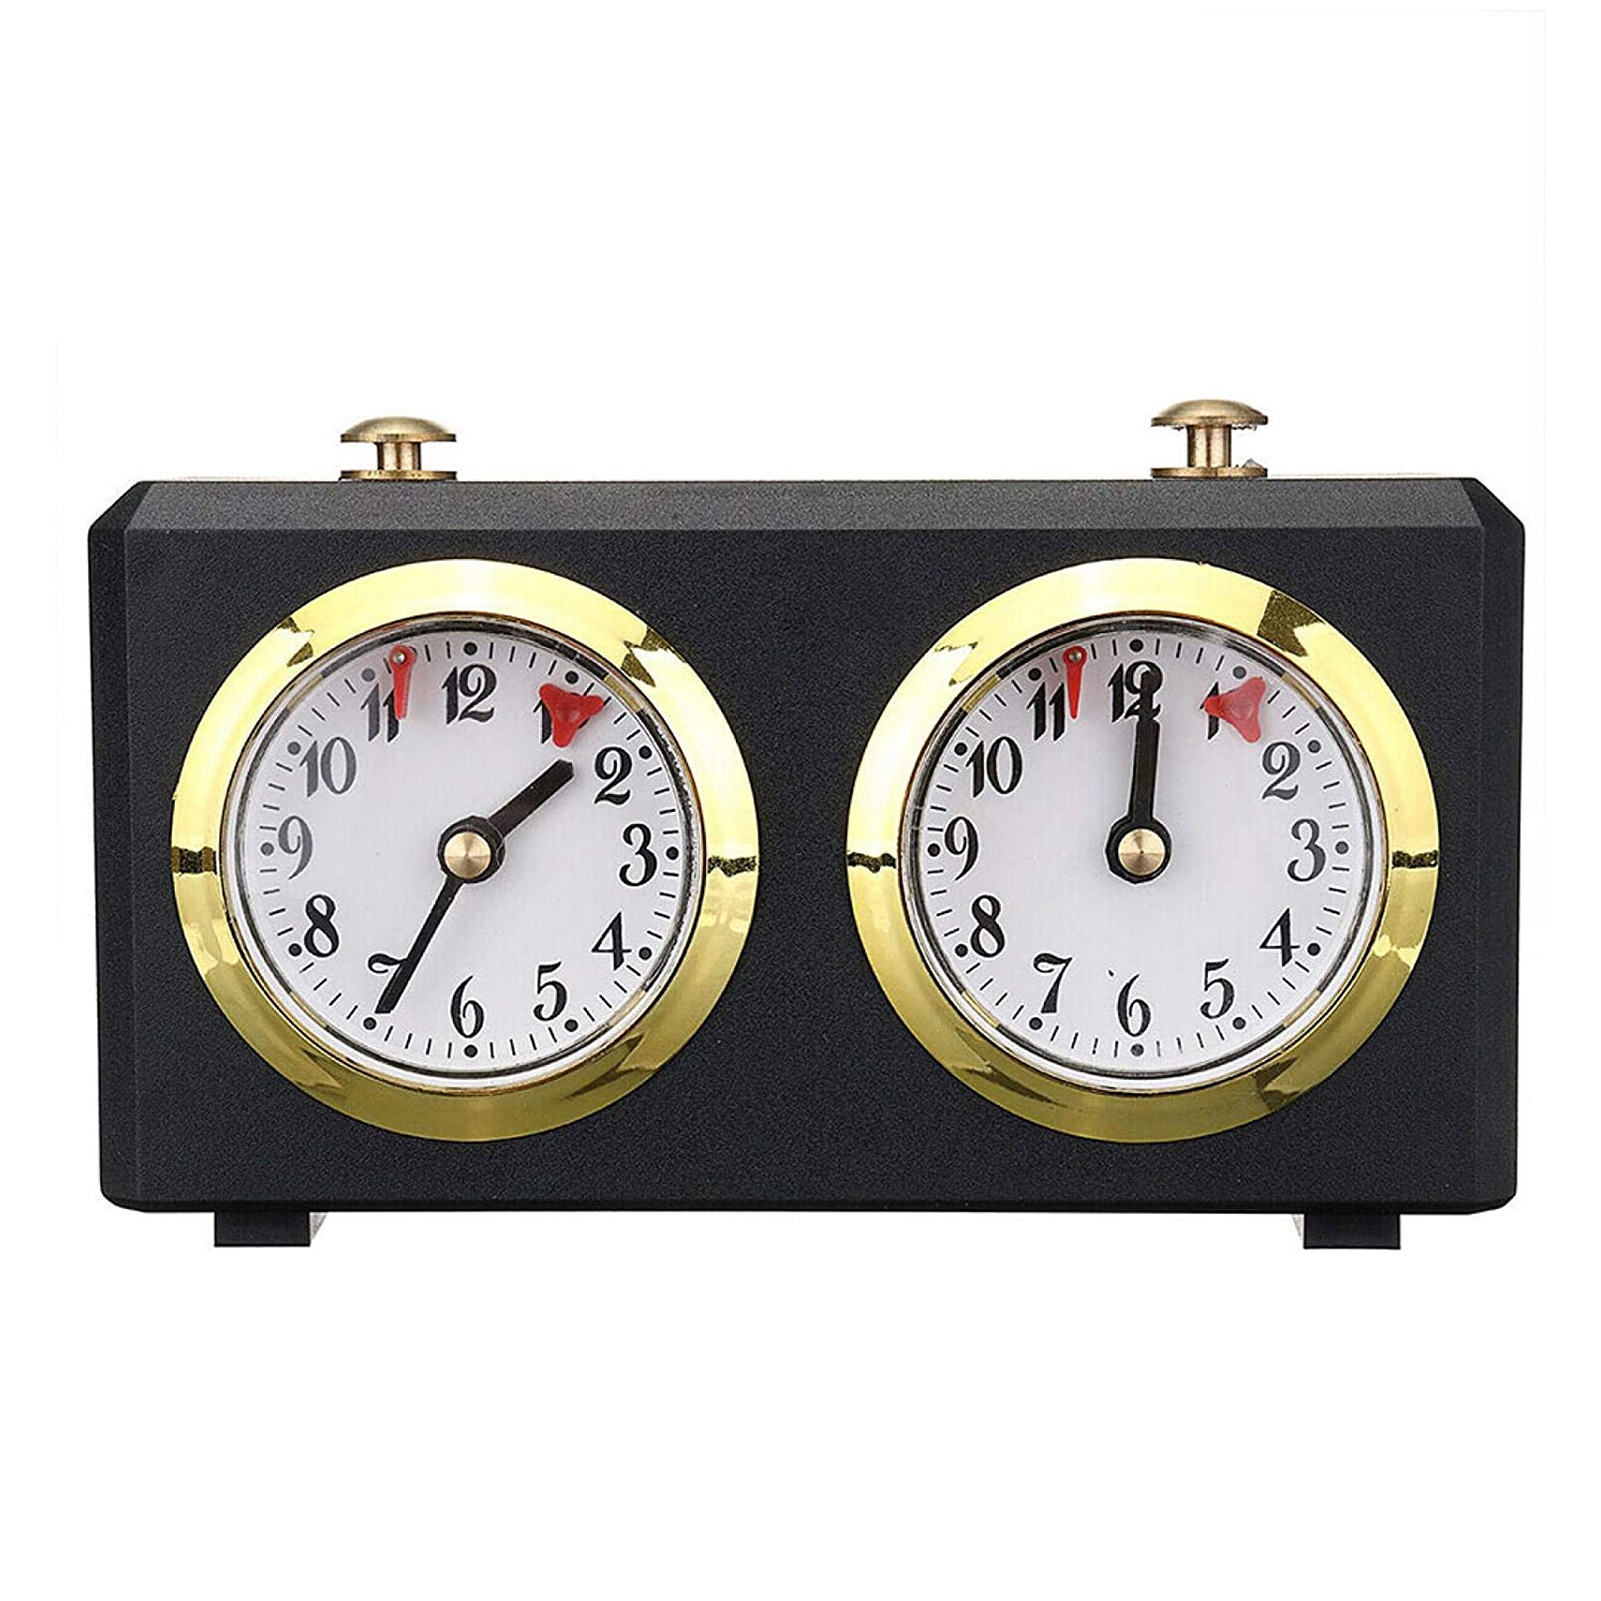 Board Games Timer Professional Competition Countdown Clock Retro Accurate Digital Chess Games Electronic Alarm Stop Timer